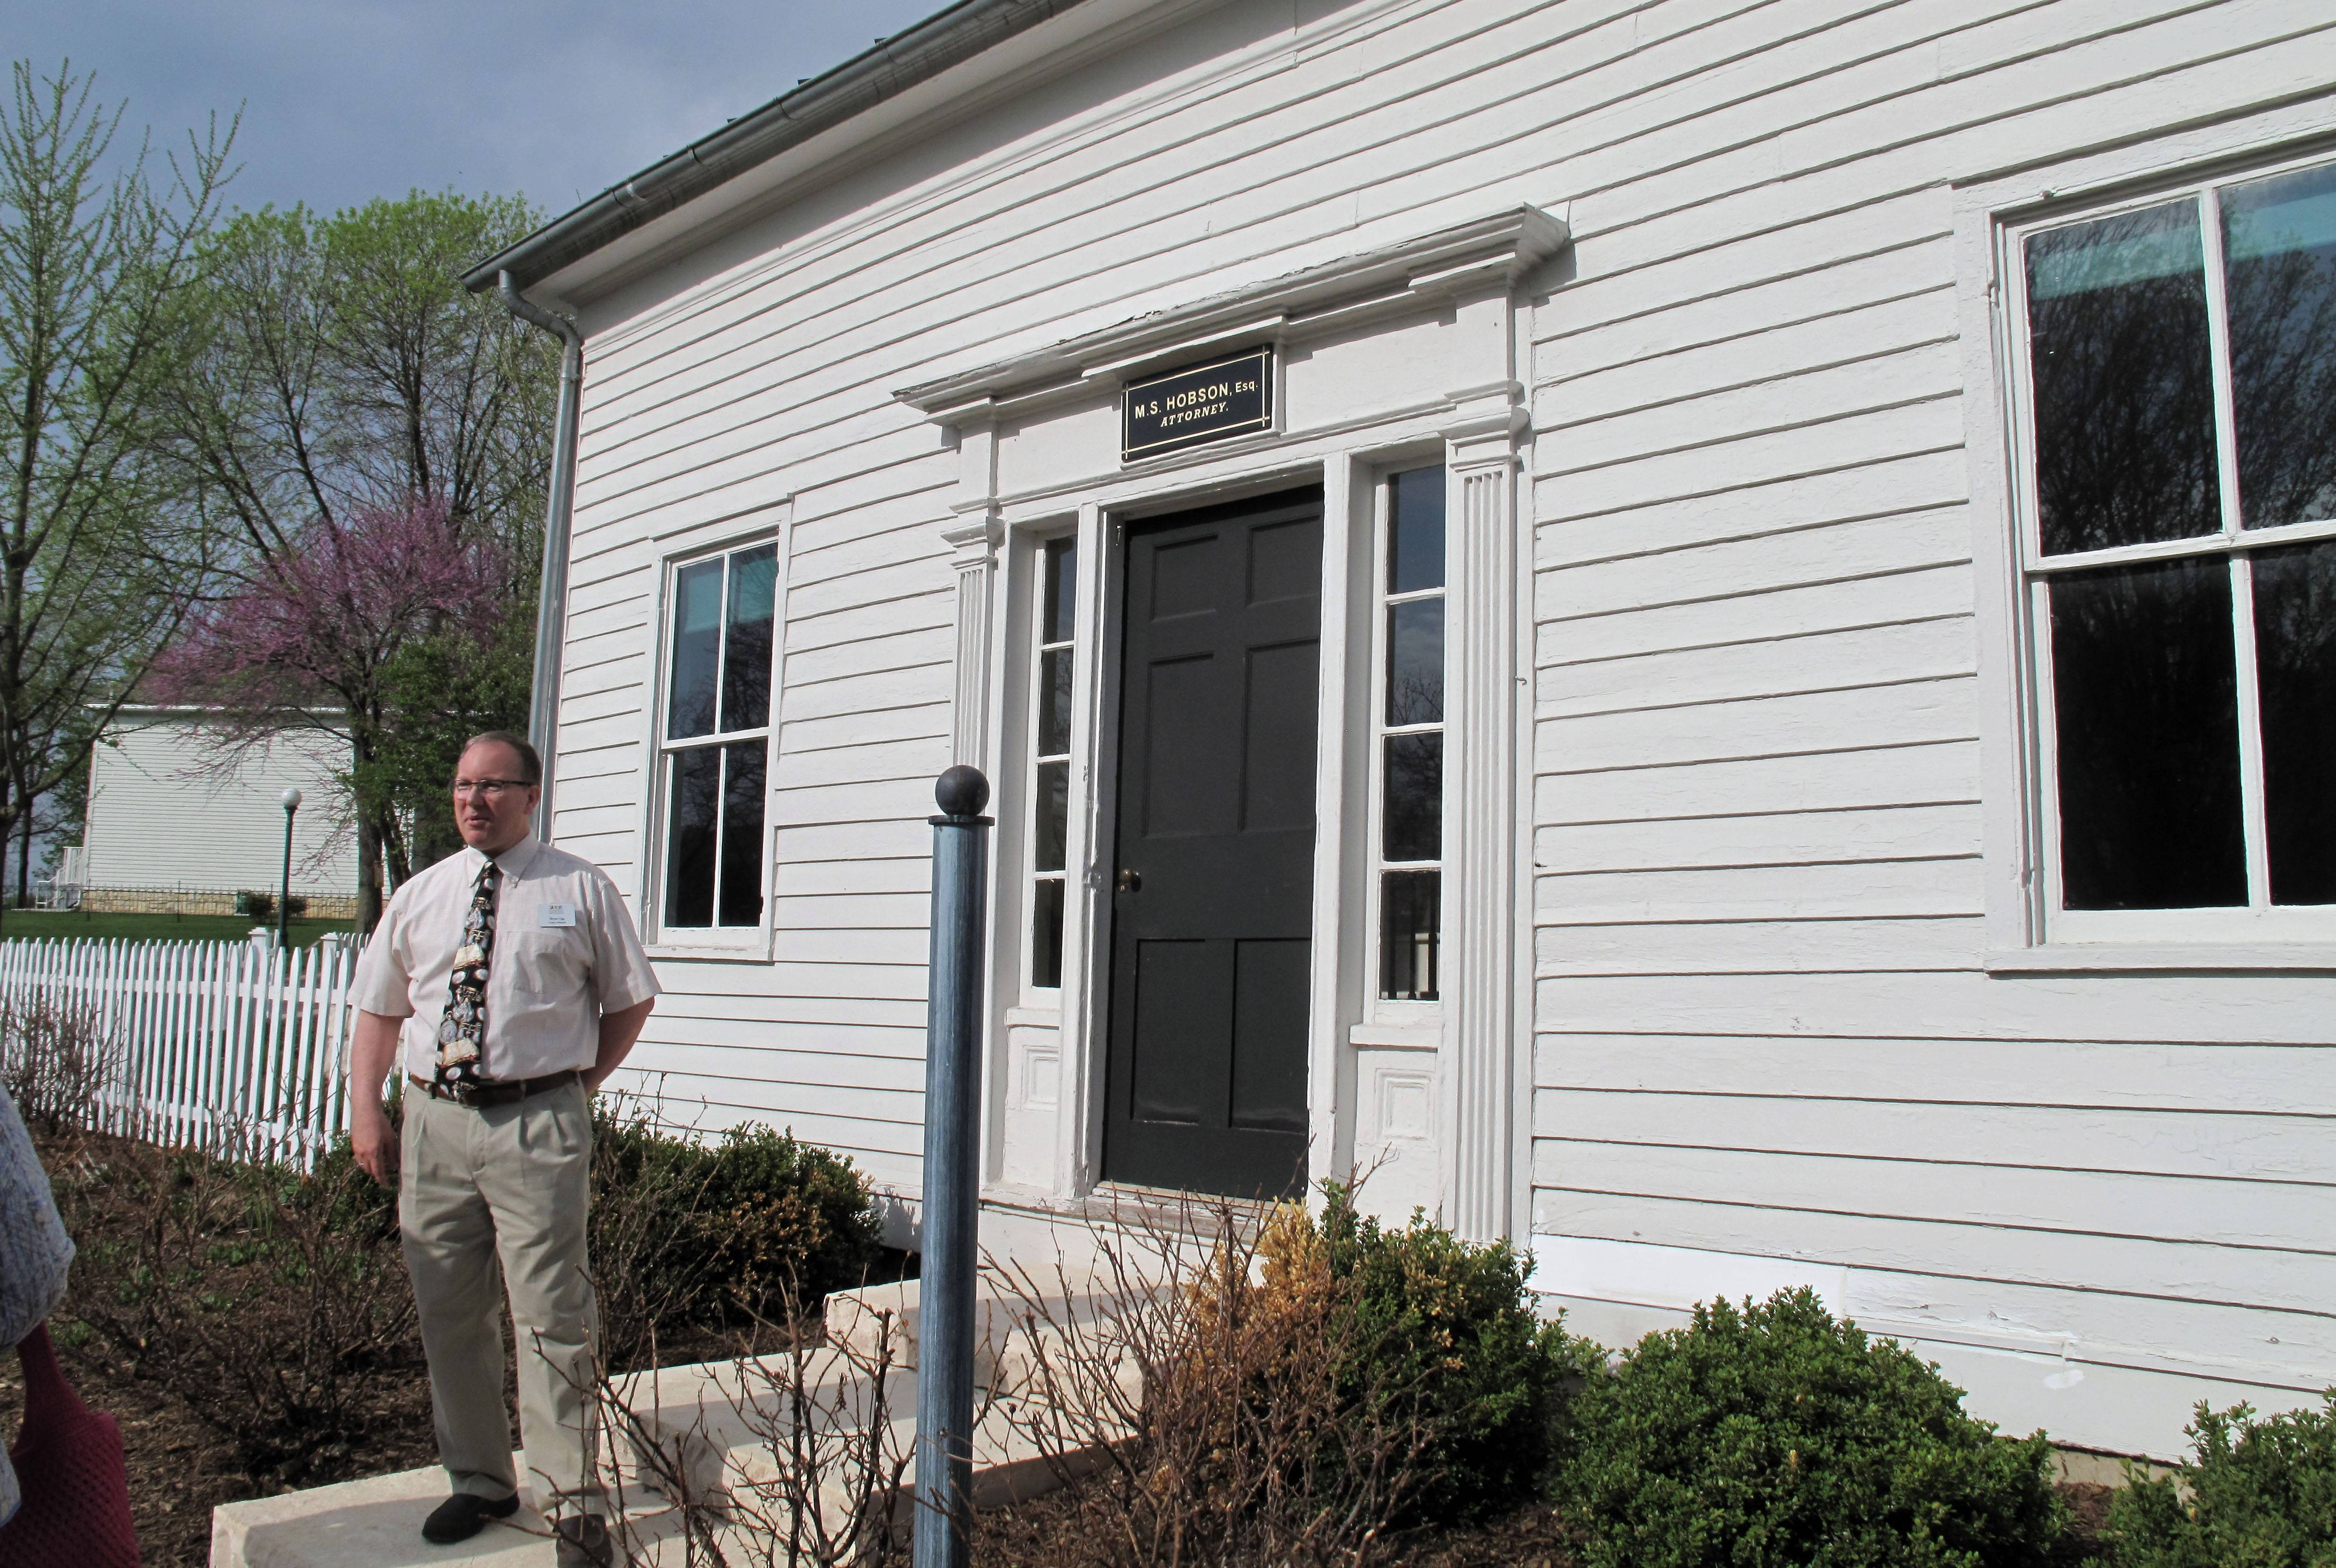 Bryan Ogg, curator of research for Naper Settlement, says this white house on the settlement's property actually was a commercial law office in downtown Naperville, not only a private residence. The settlement rededicated a building Thursday for the first time in 45 years as the Hobson Law Office opened for tours.